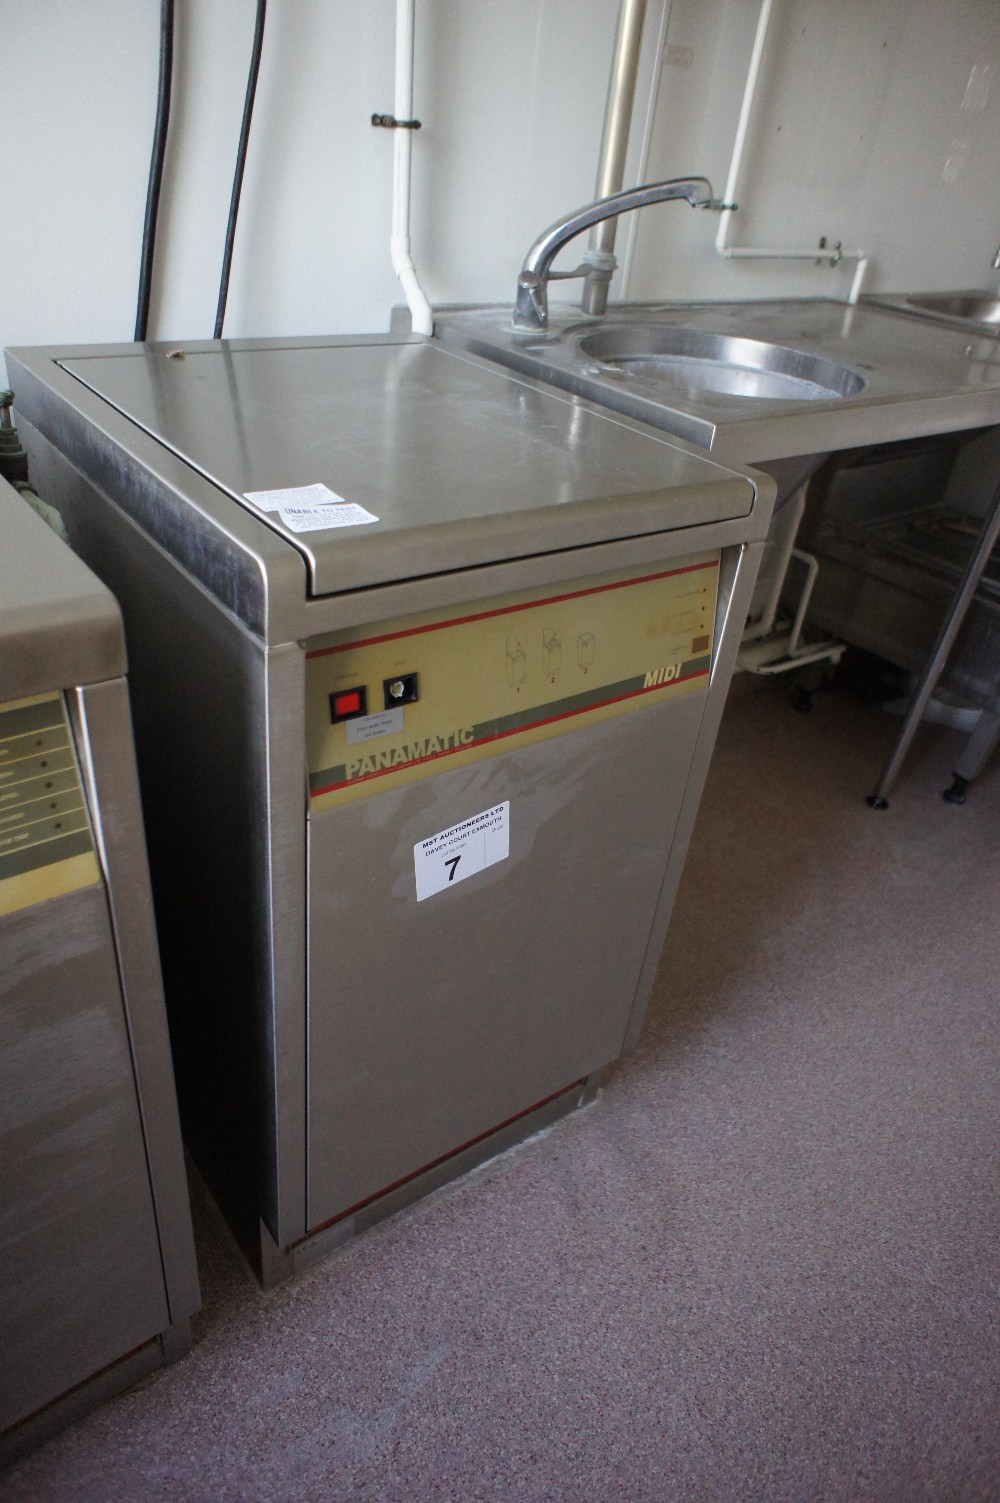 Lot 7 - 1 PANAMATIC stainless steel commercial sluice machine (located in room 2, Davey Court)